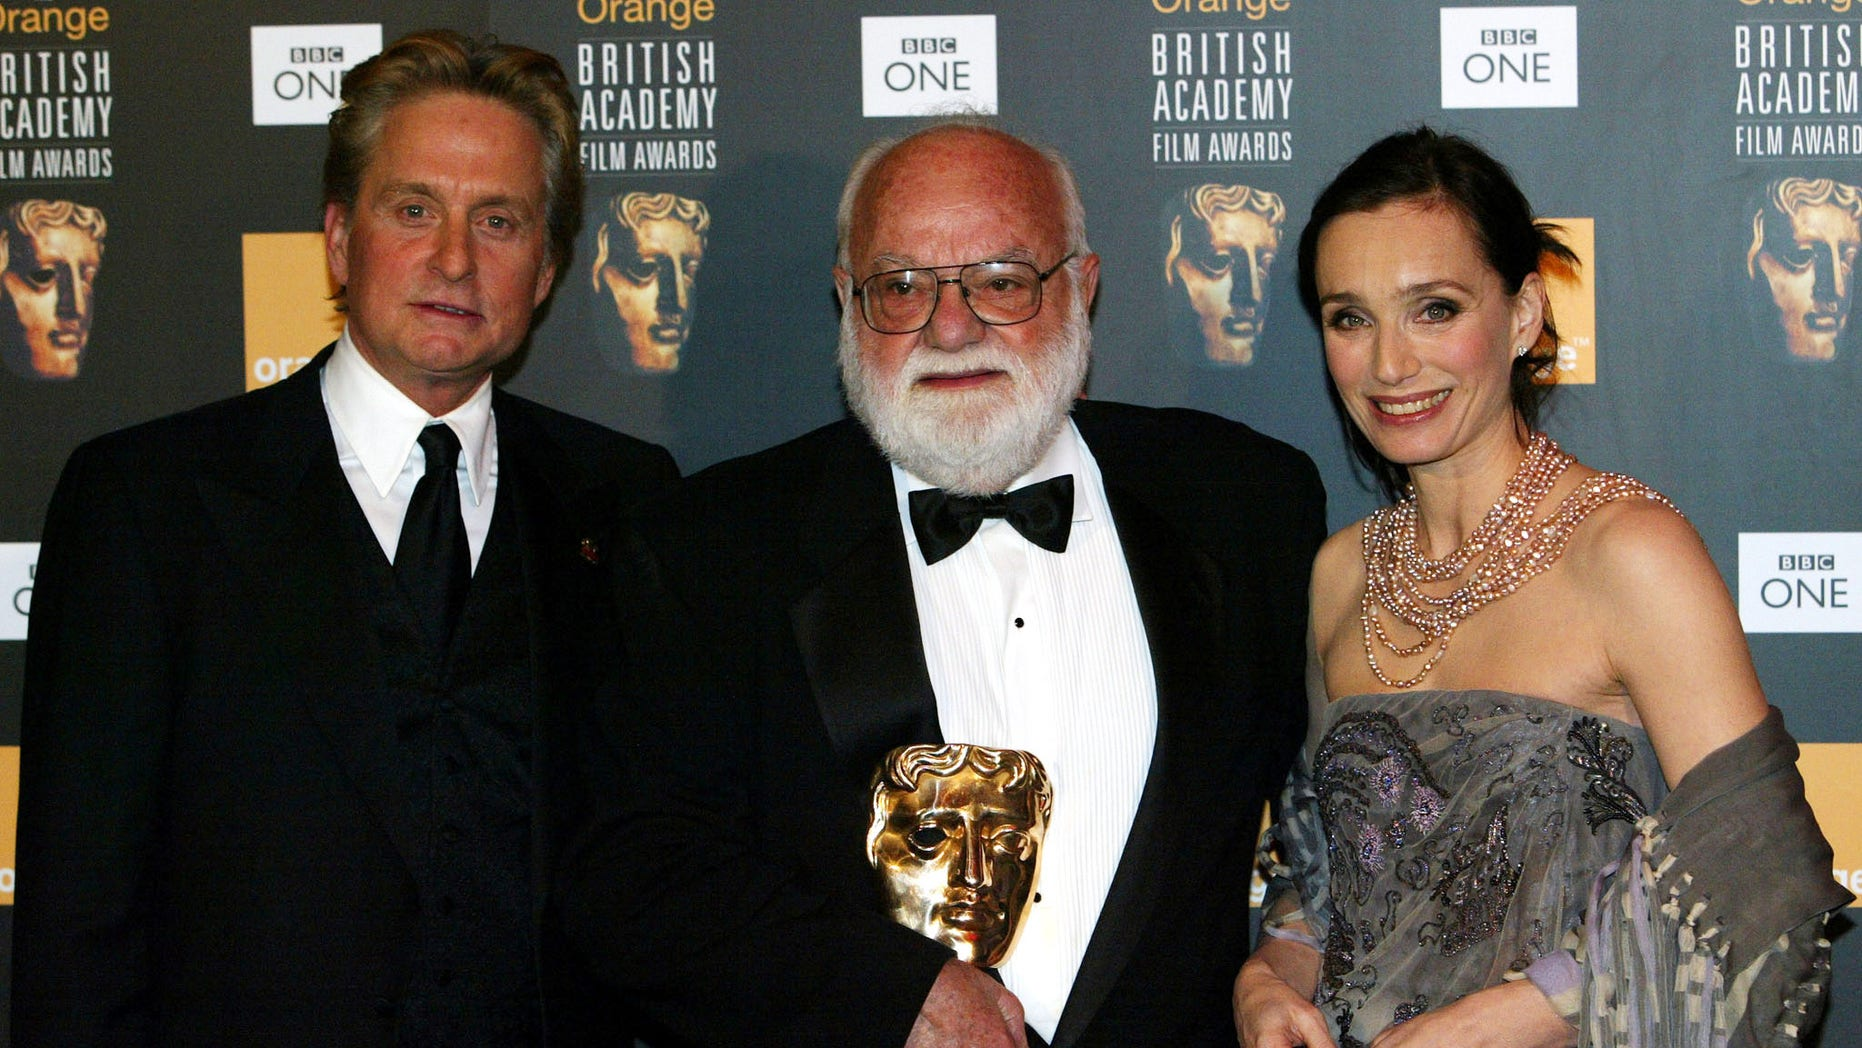 February 23, 2003. Michael Douglas presents producer Saul Zaentz with The Academy Fellowship as he stands flanked by British actress Kristen Scott-Thomas during the British Academy of Film and Television Arts (BAFTA) Awards at the Odeon Leicester Square in London.